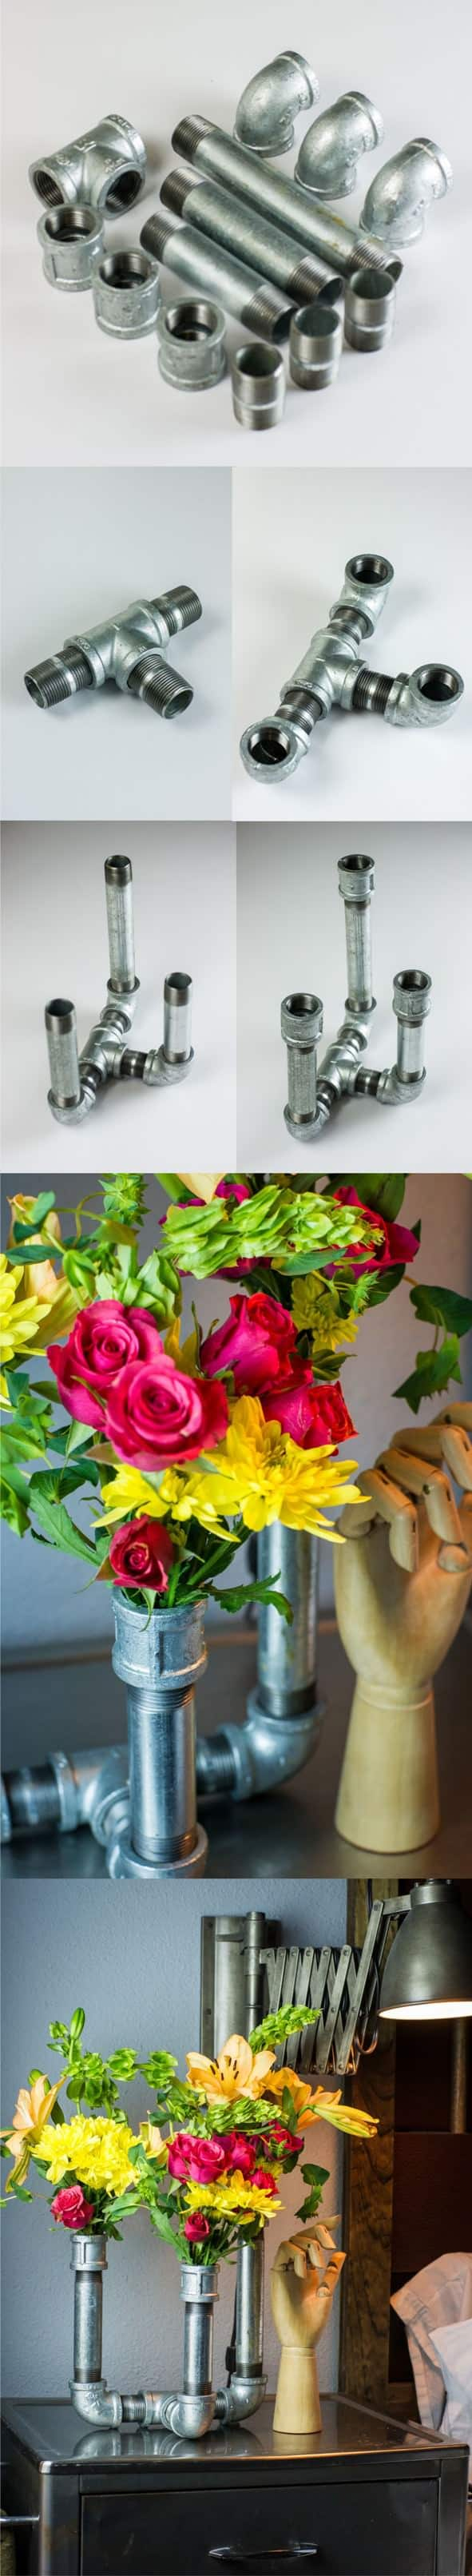 Galvanized Pipe Vase Do-It-Yourself Ideas